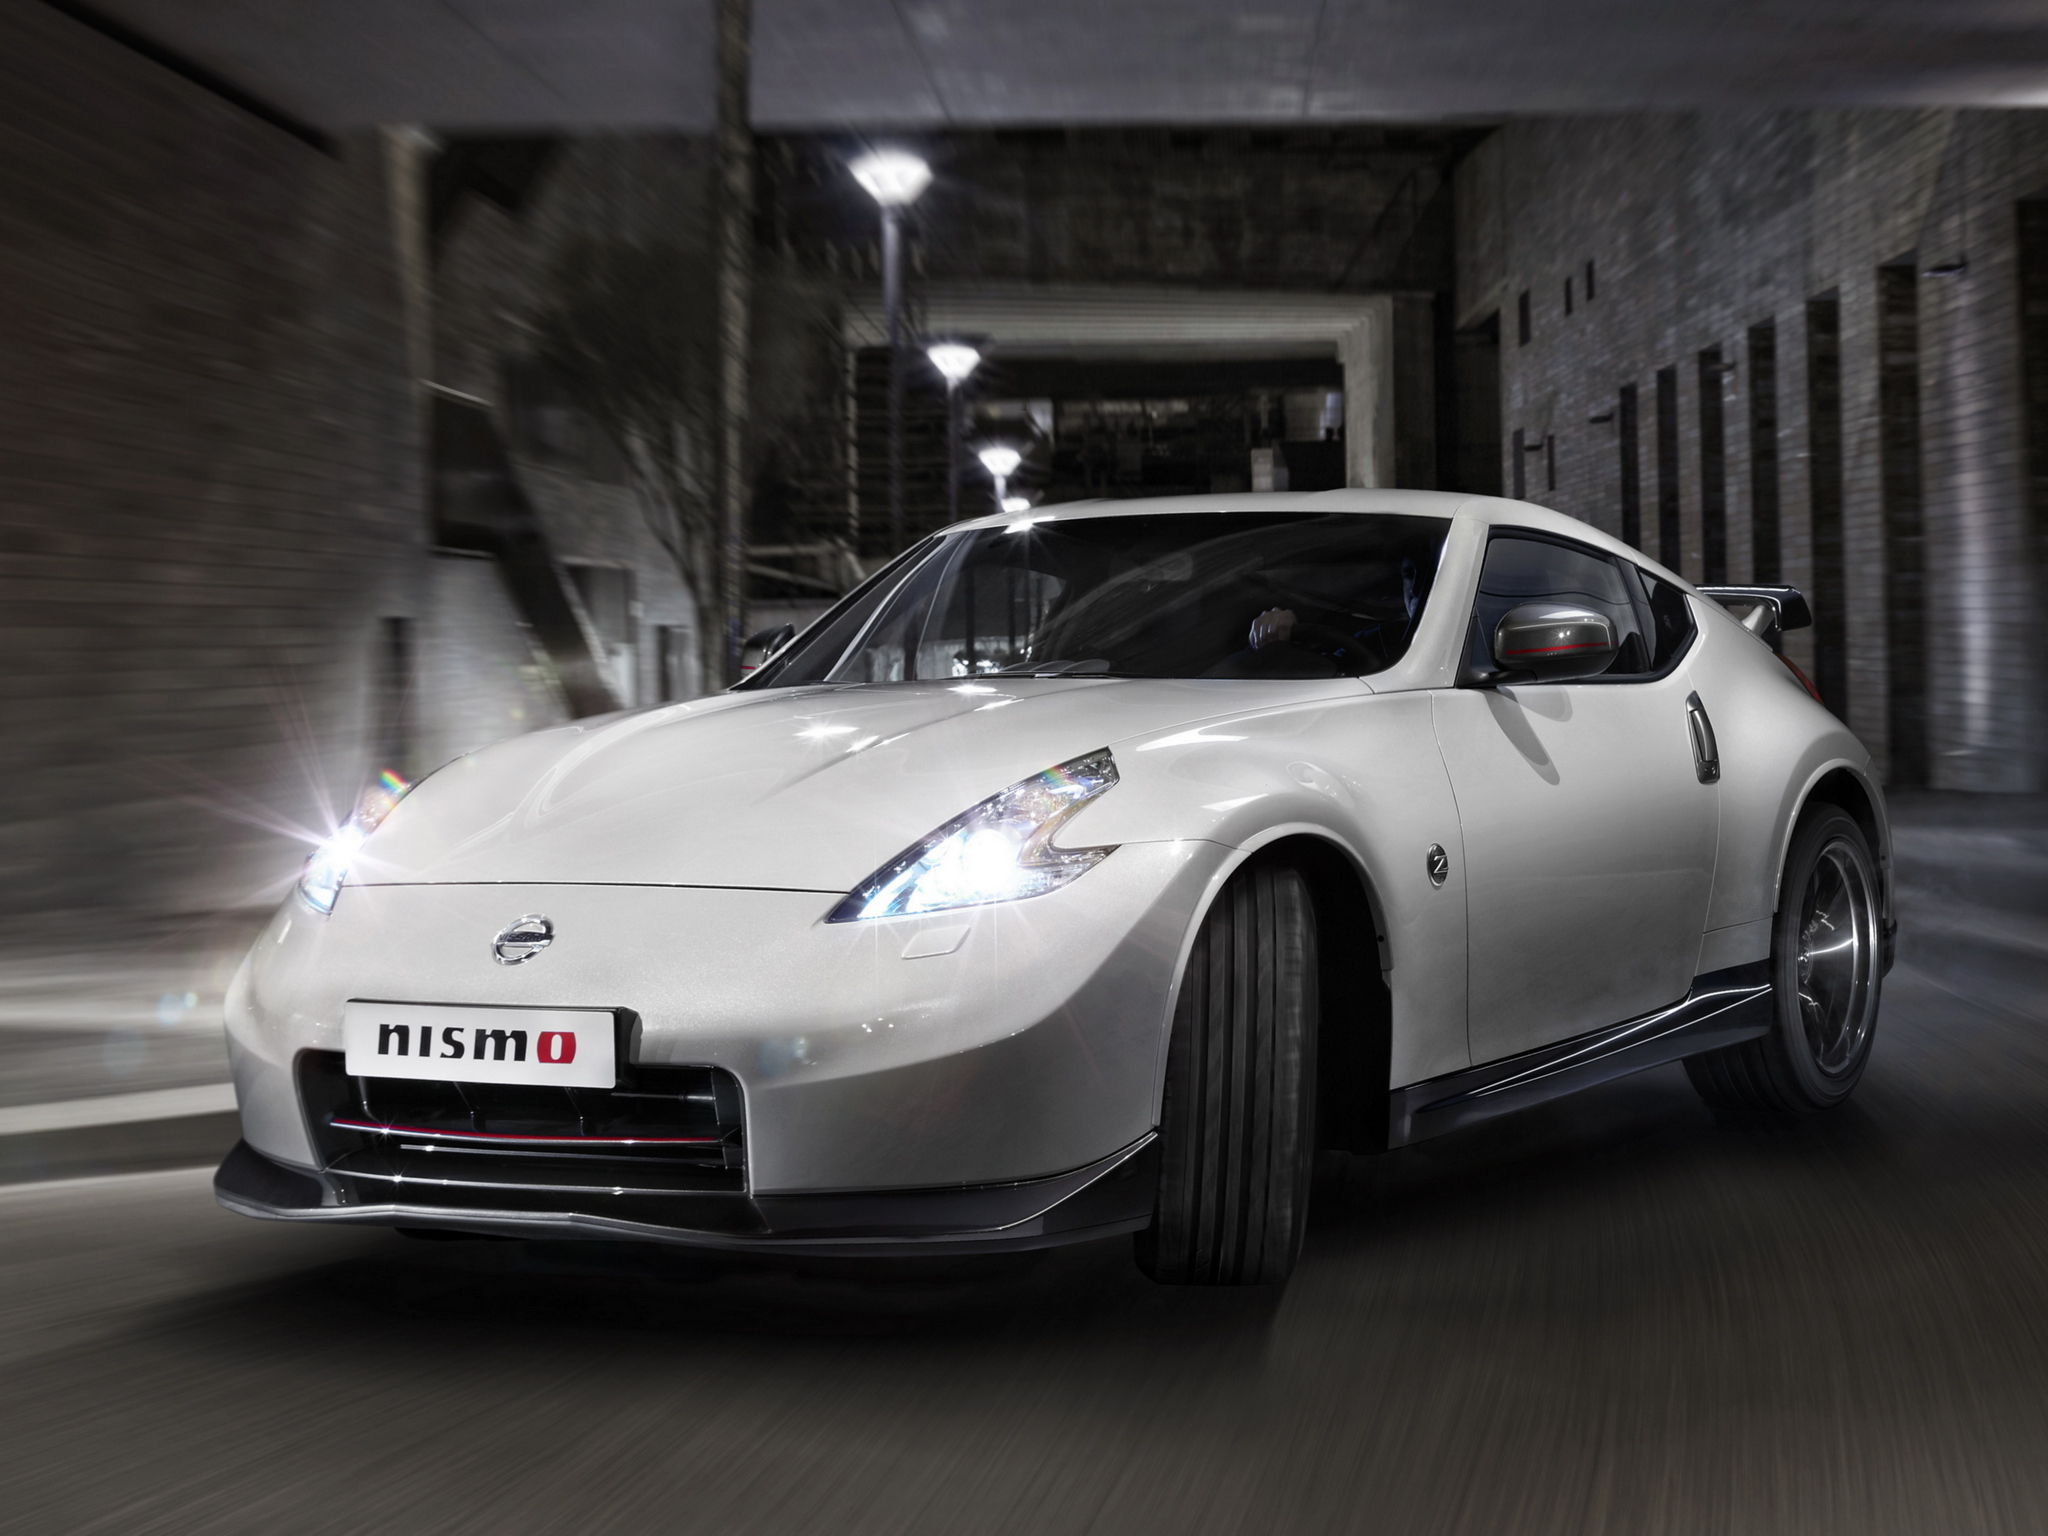 2013 370z wallpaper - photo #3